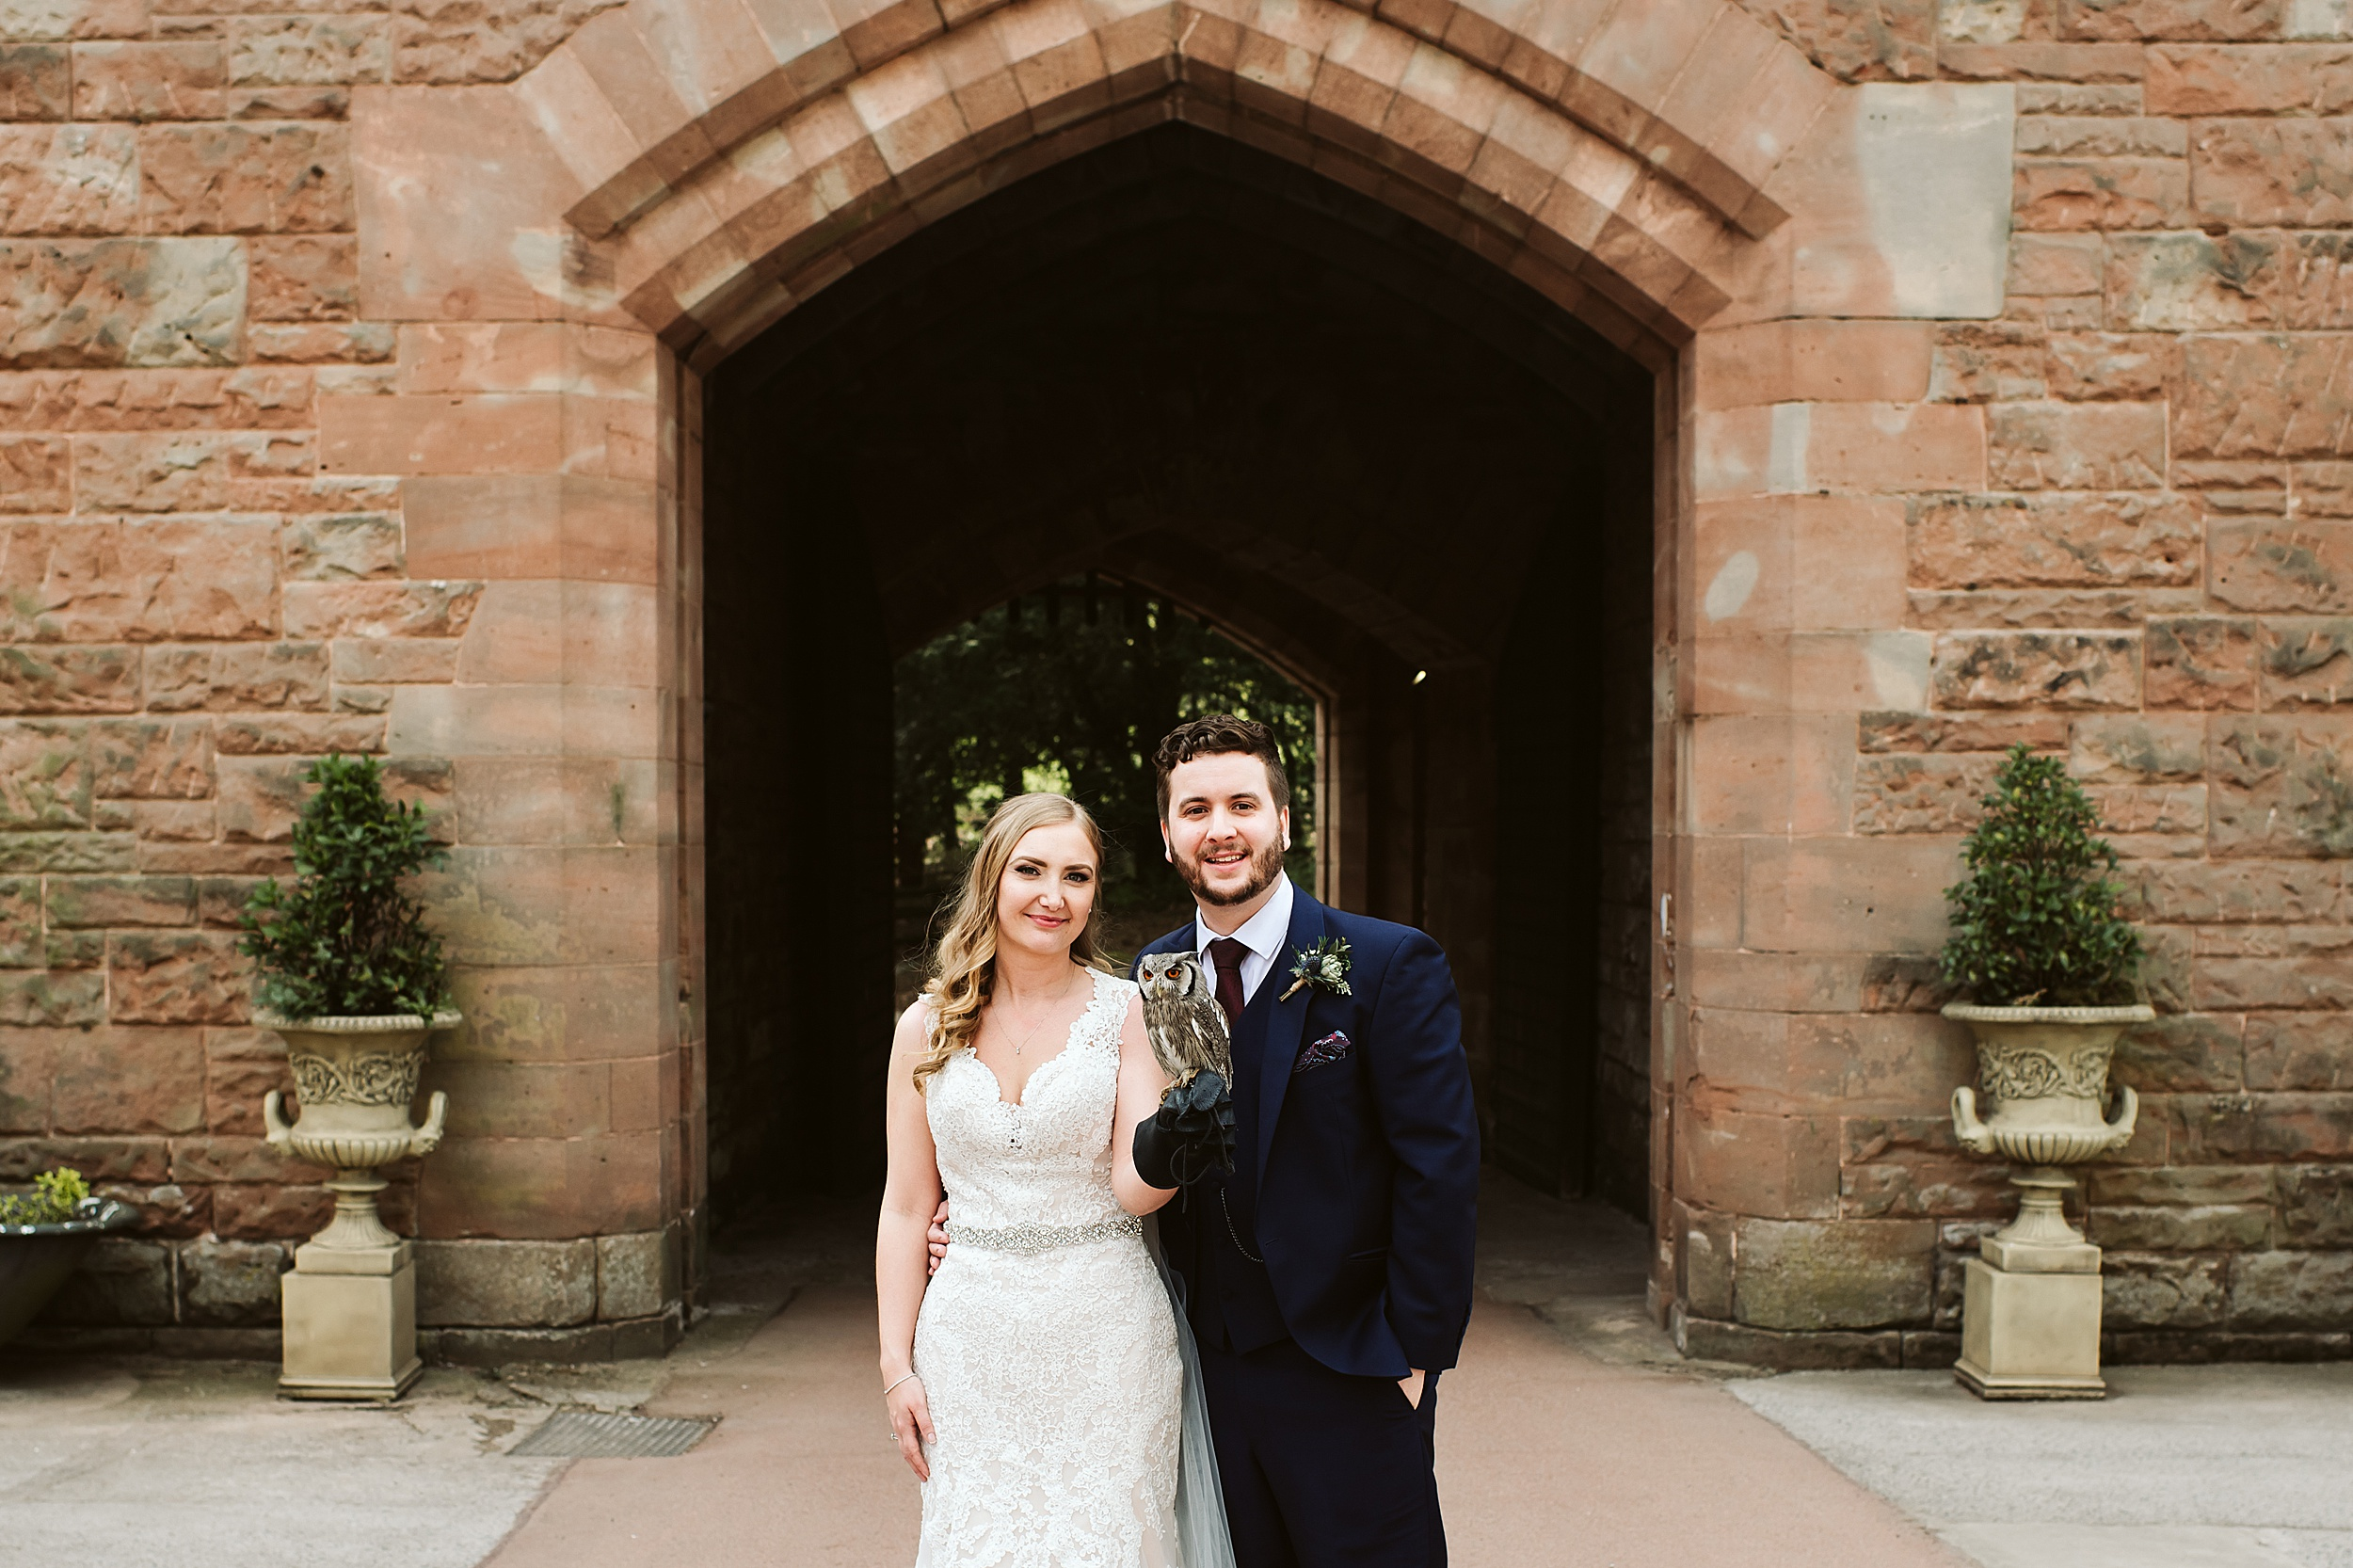 Peckforton_Castle_Cheshire_Toronto_Wedding_Photographer_UK_Destination_Wedding_0068.jpg